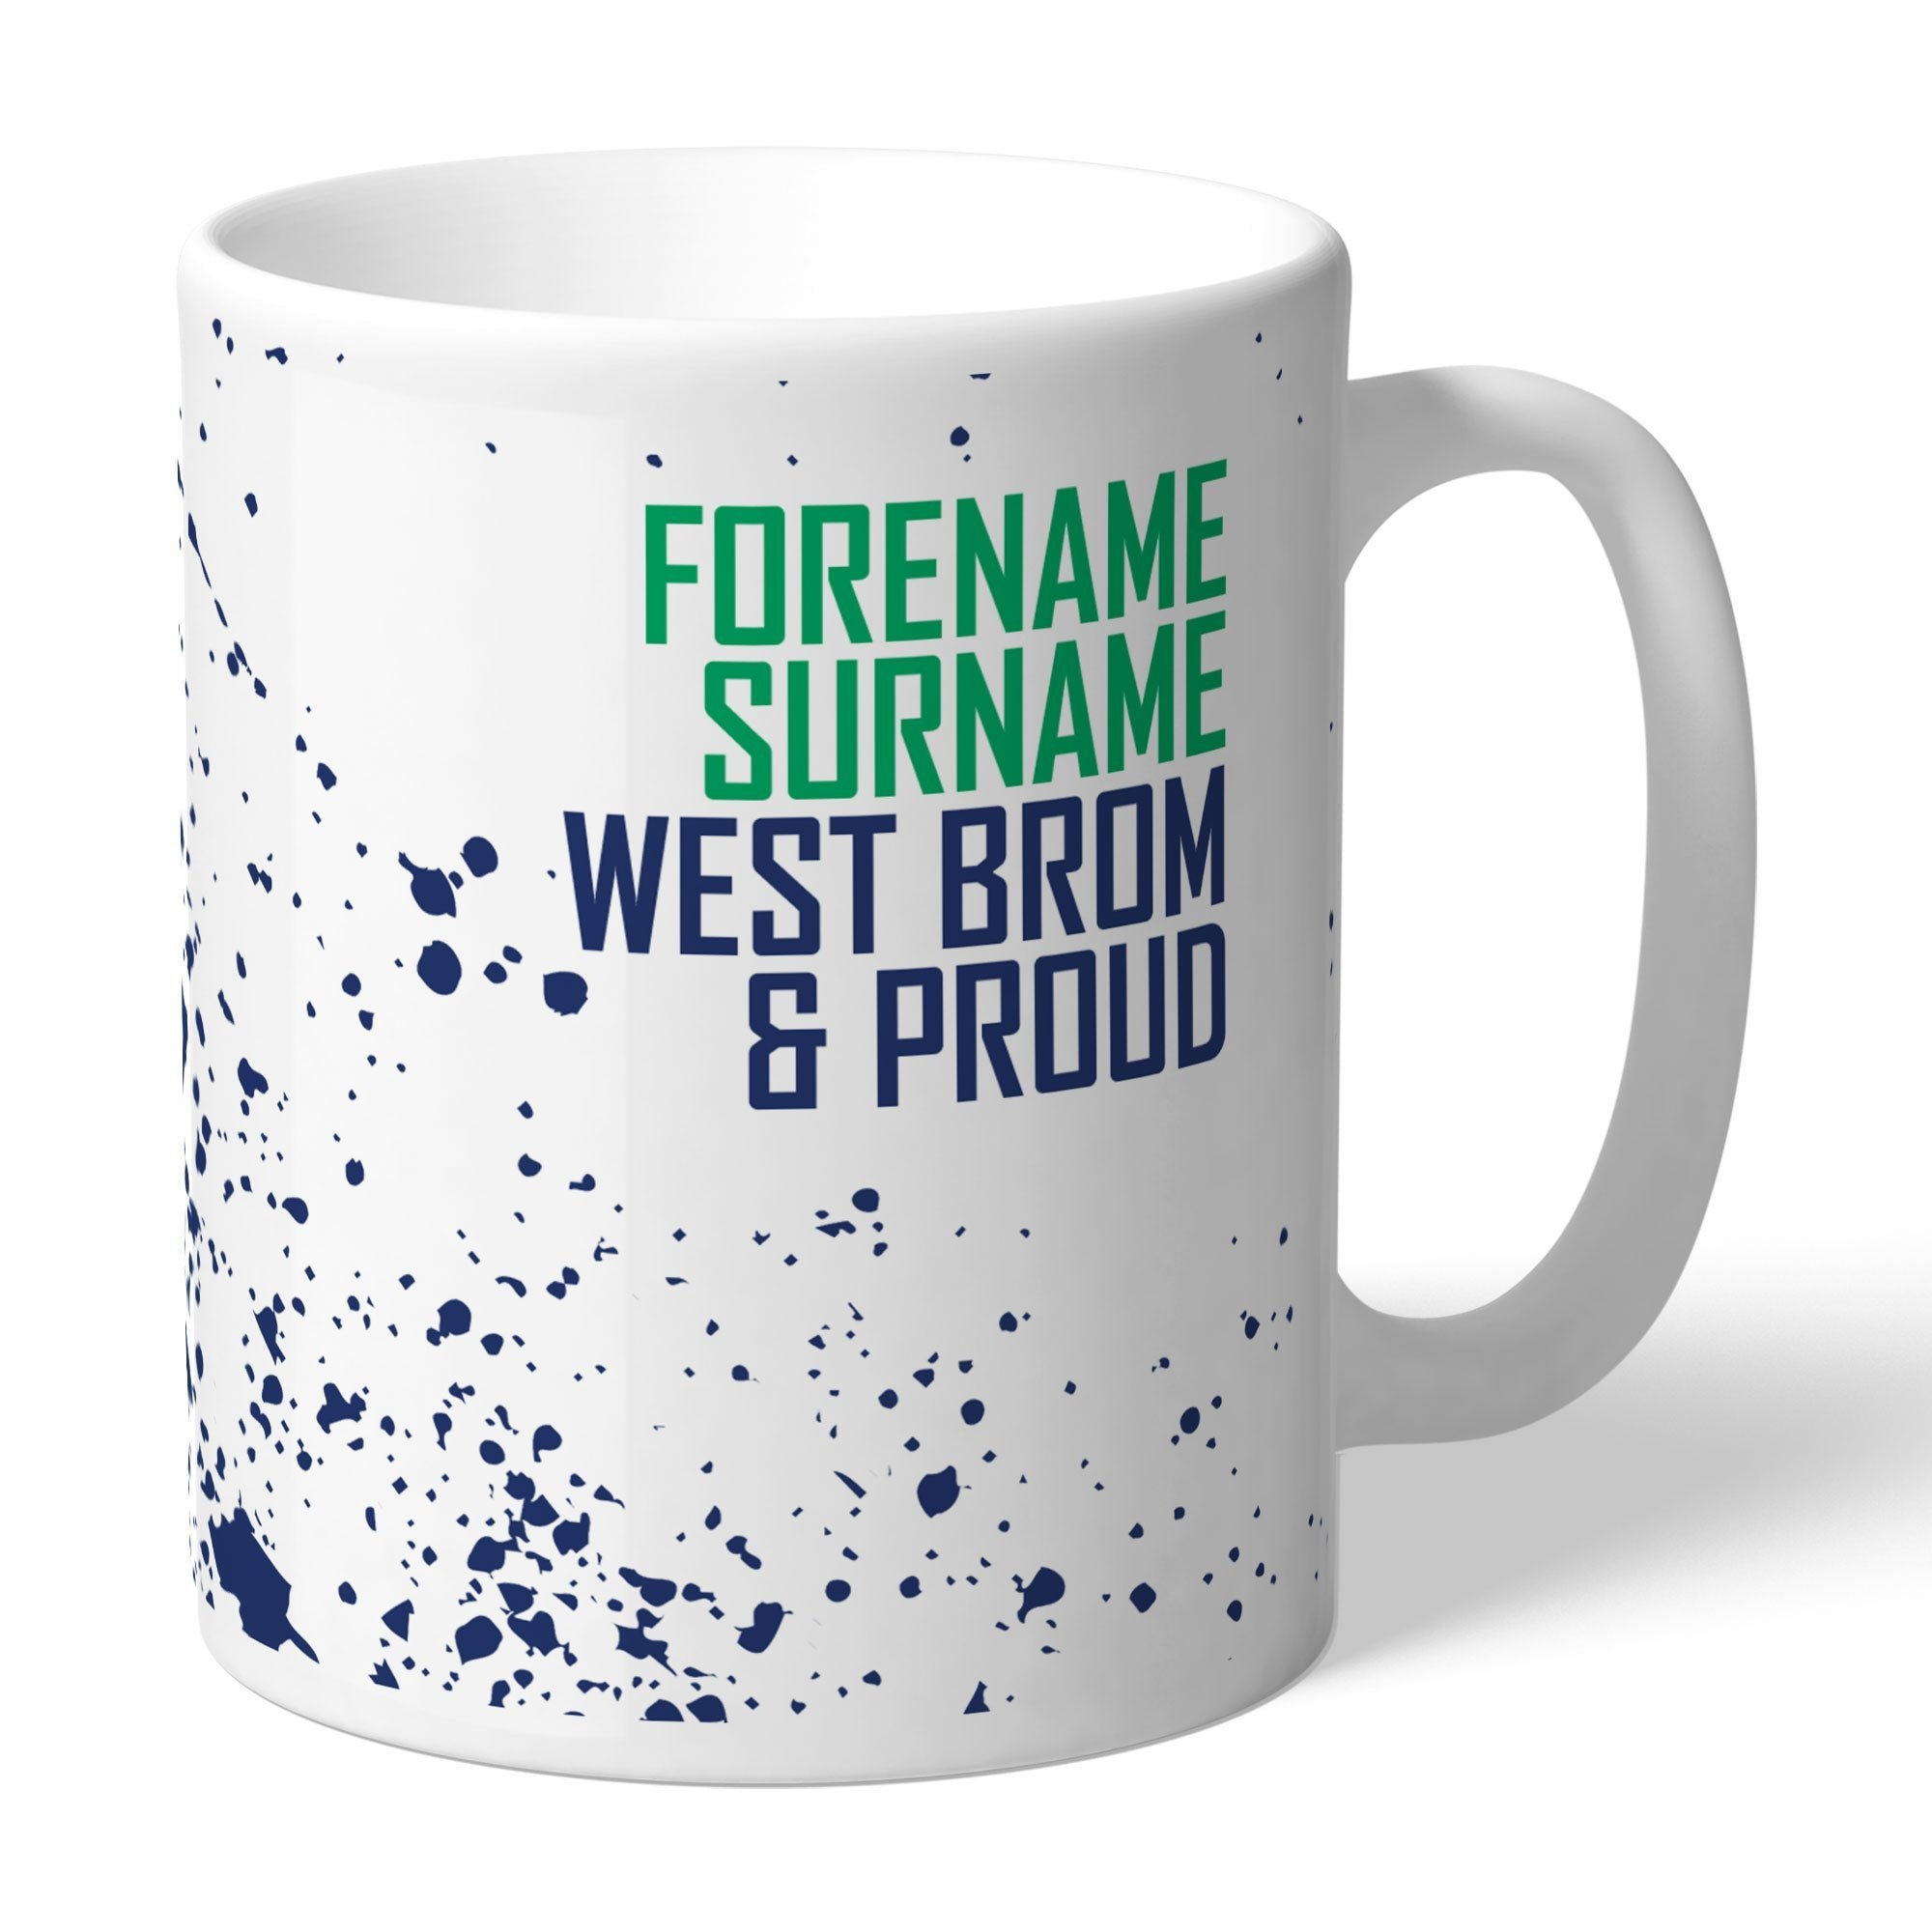 Personalised West Bromwich Albion FC Proud Mug, Kitchen & Dining by Glamorous Gifts UK